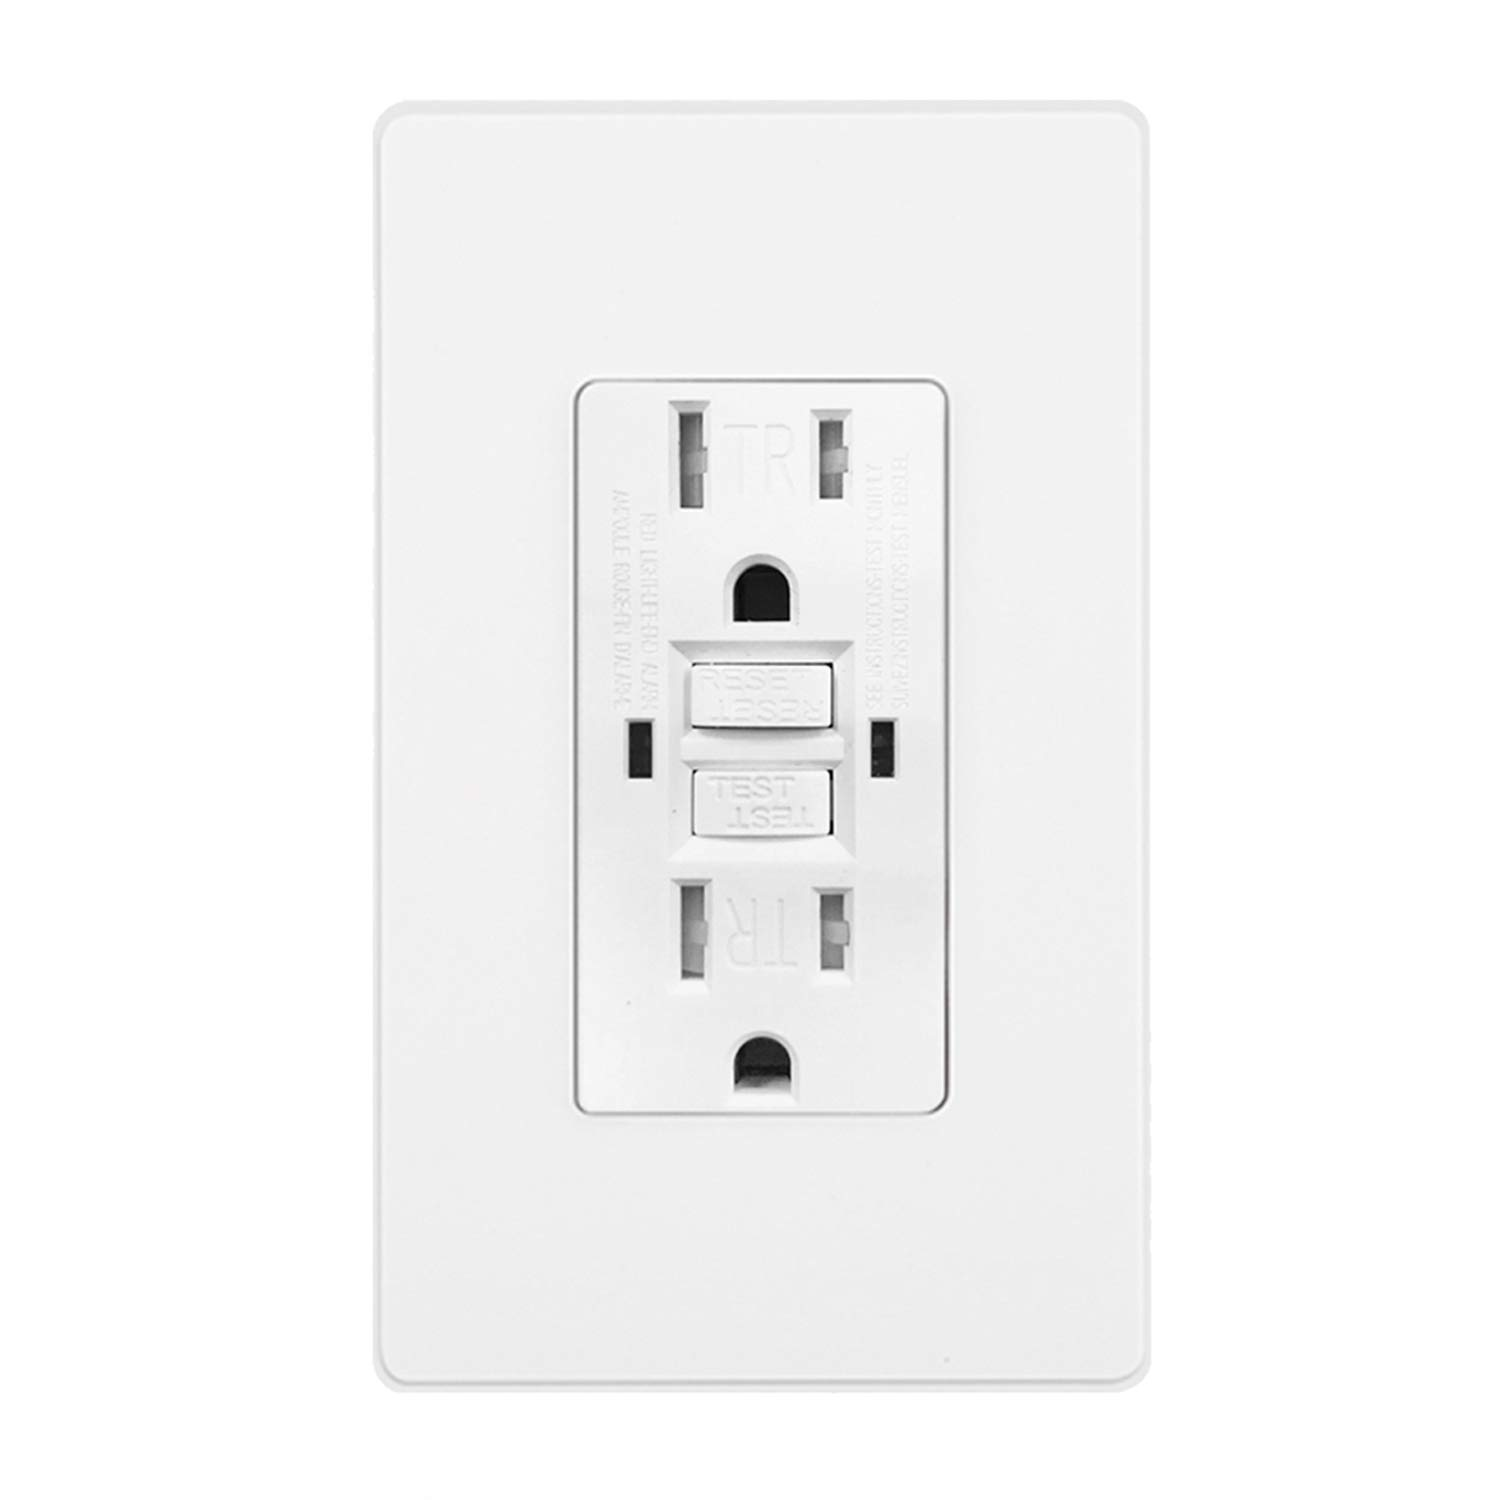 BESTTEN Tamper-Resistant GFCI Outlet Receptacle (15Amp 125Volt), LED Indicator, Decor Wall Plate and Screws Included, ETL Certified, White